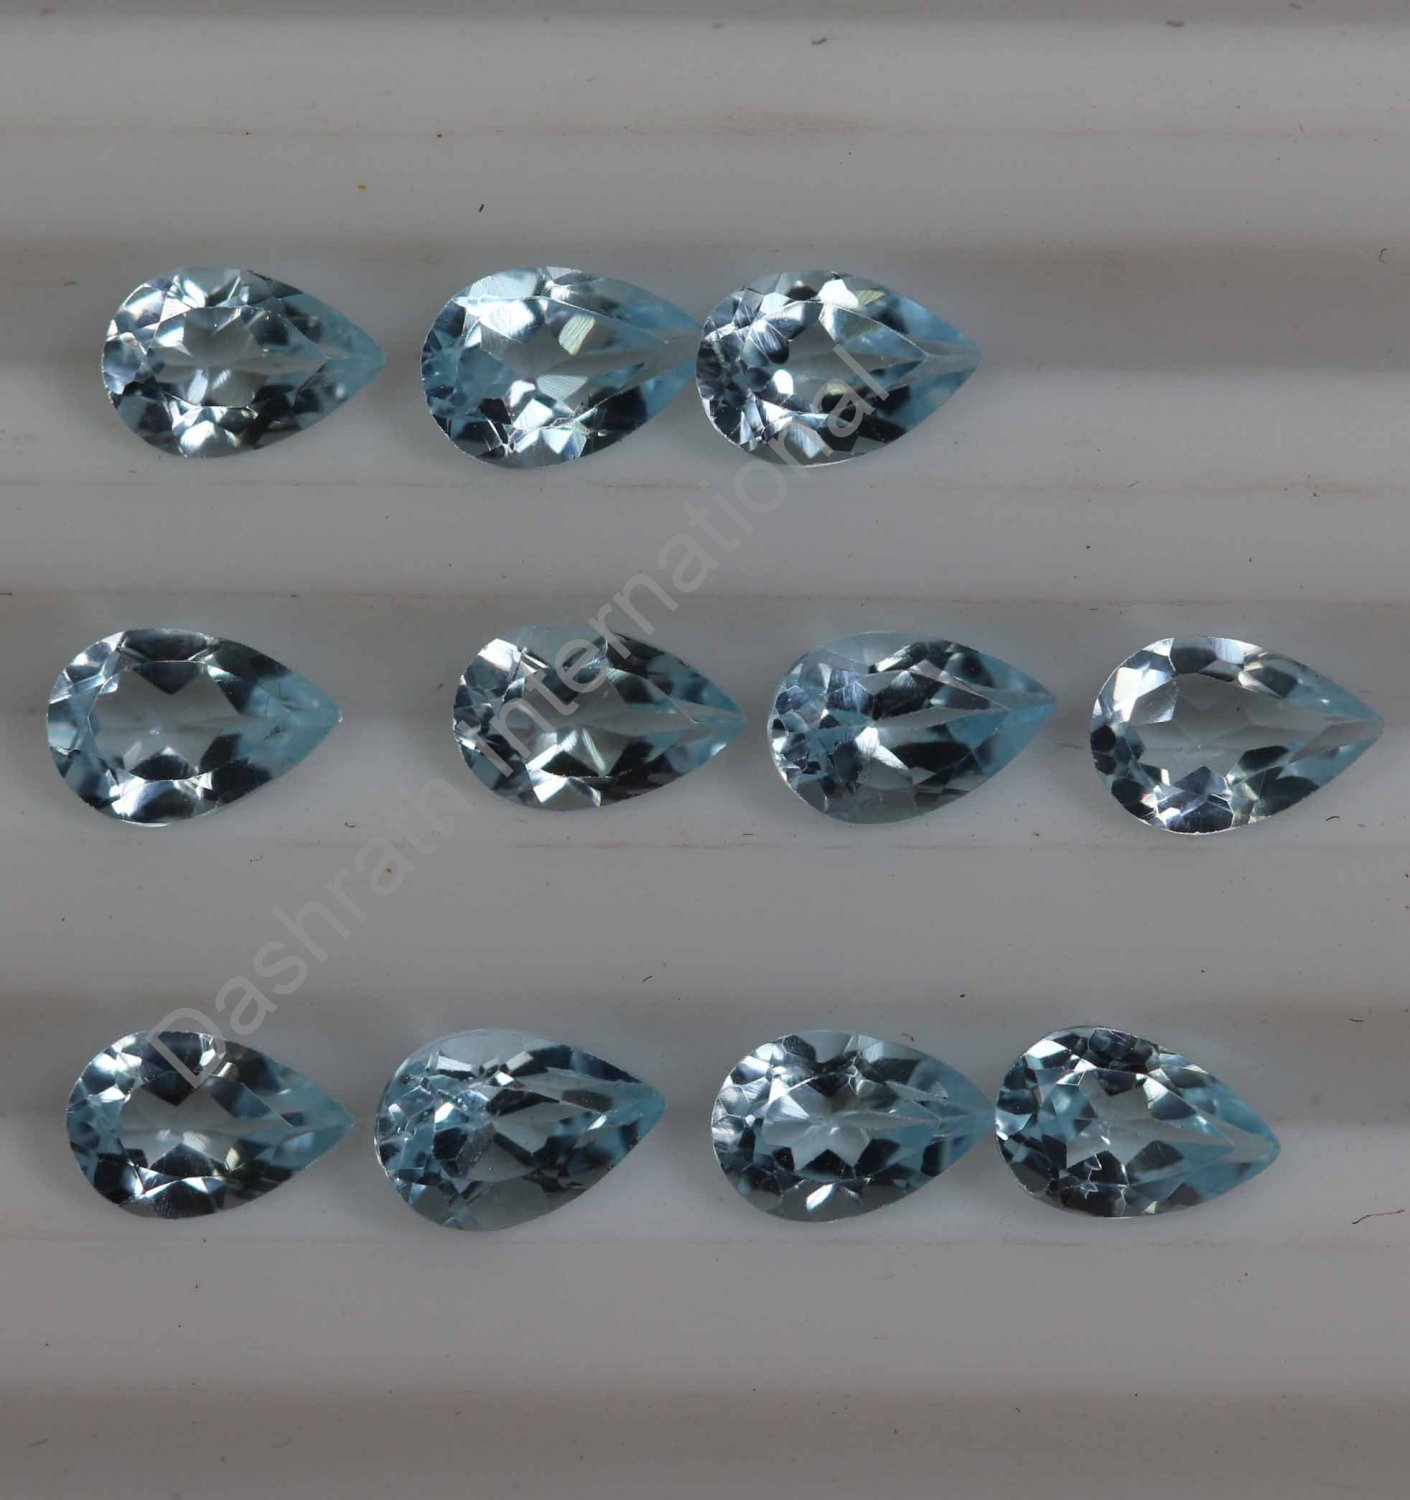 7x5mm  Natural Sky Blue Topaz Faceted Cut Pear 100 Pieces Lot  Top Quality Loose Gemstone